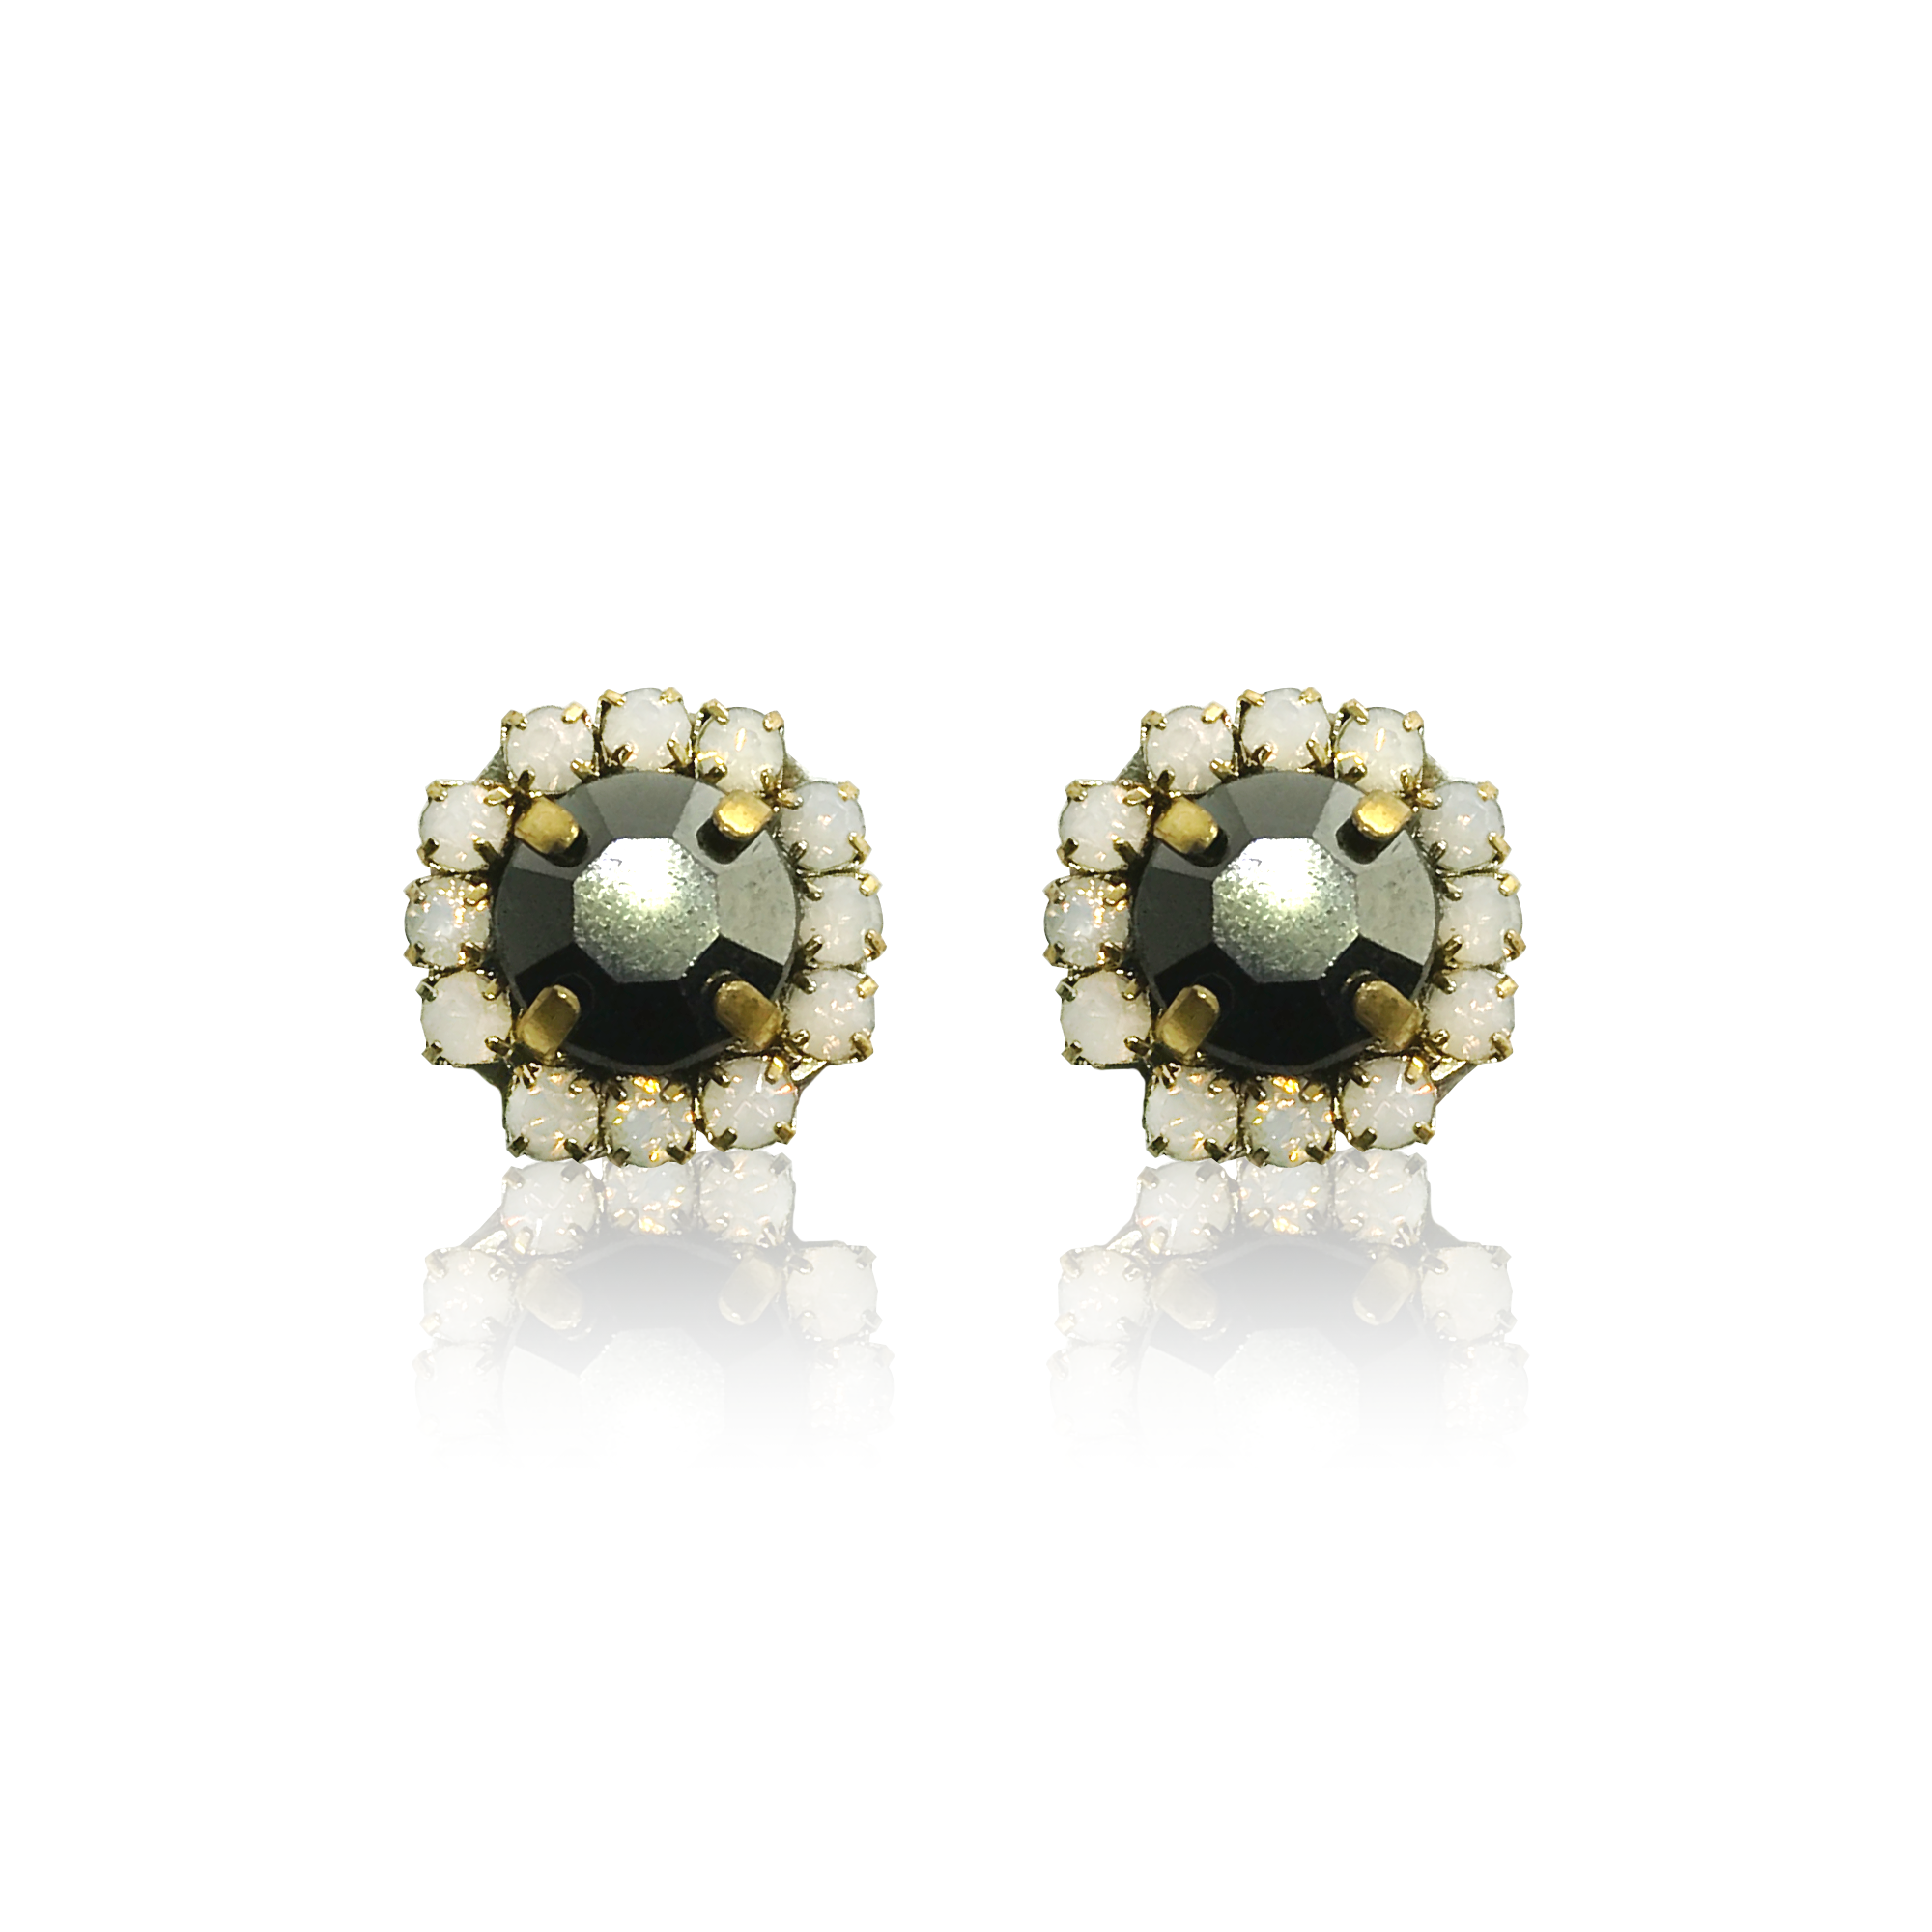 Dopodomani Stones Black Earrings